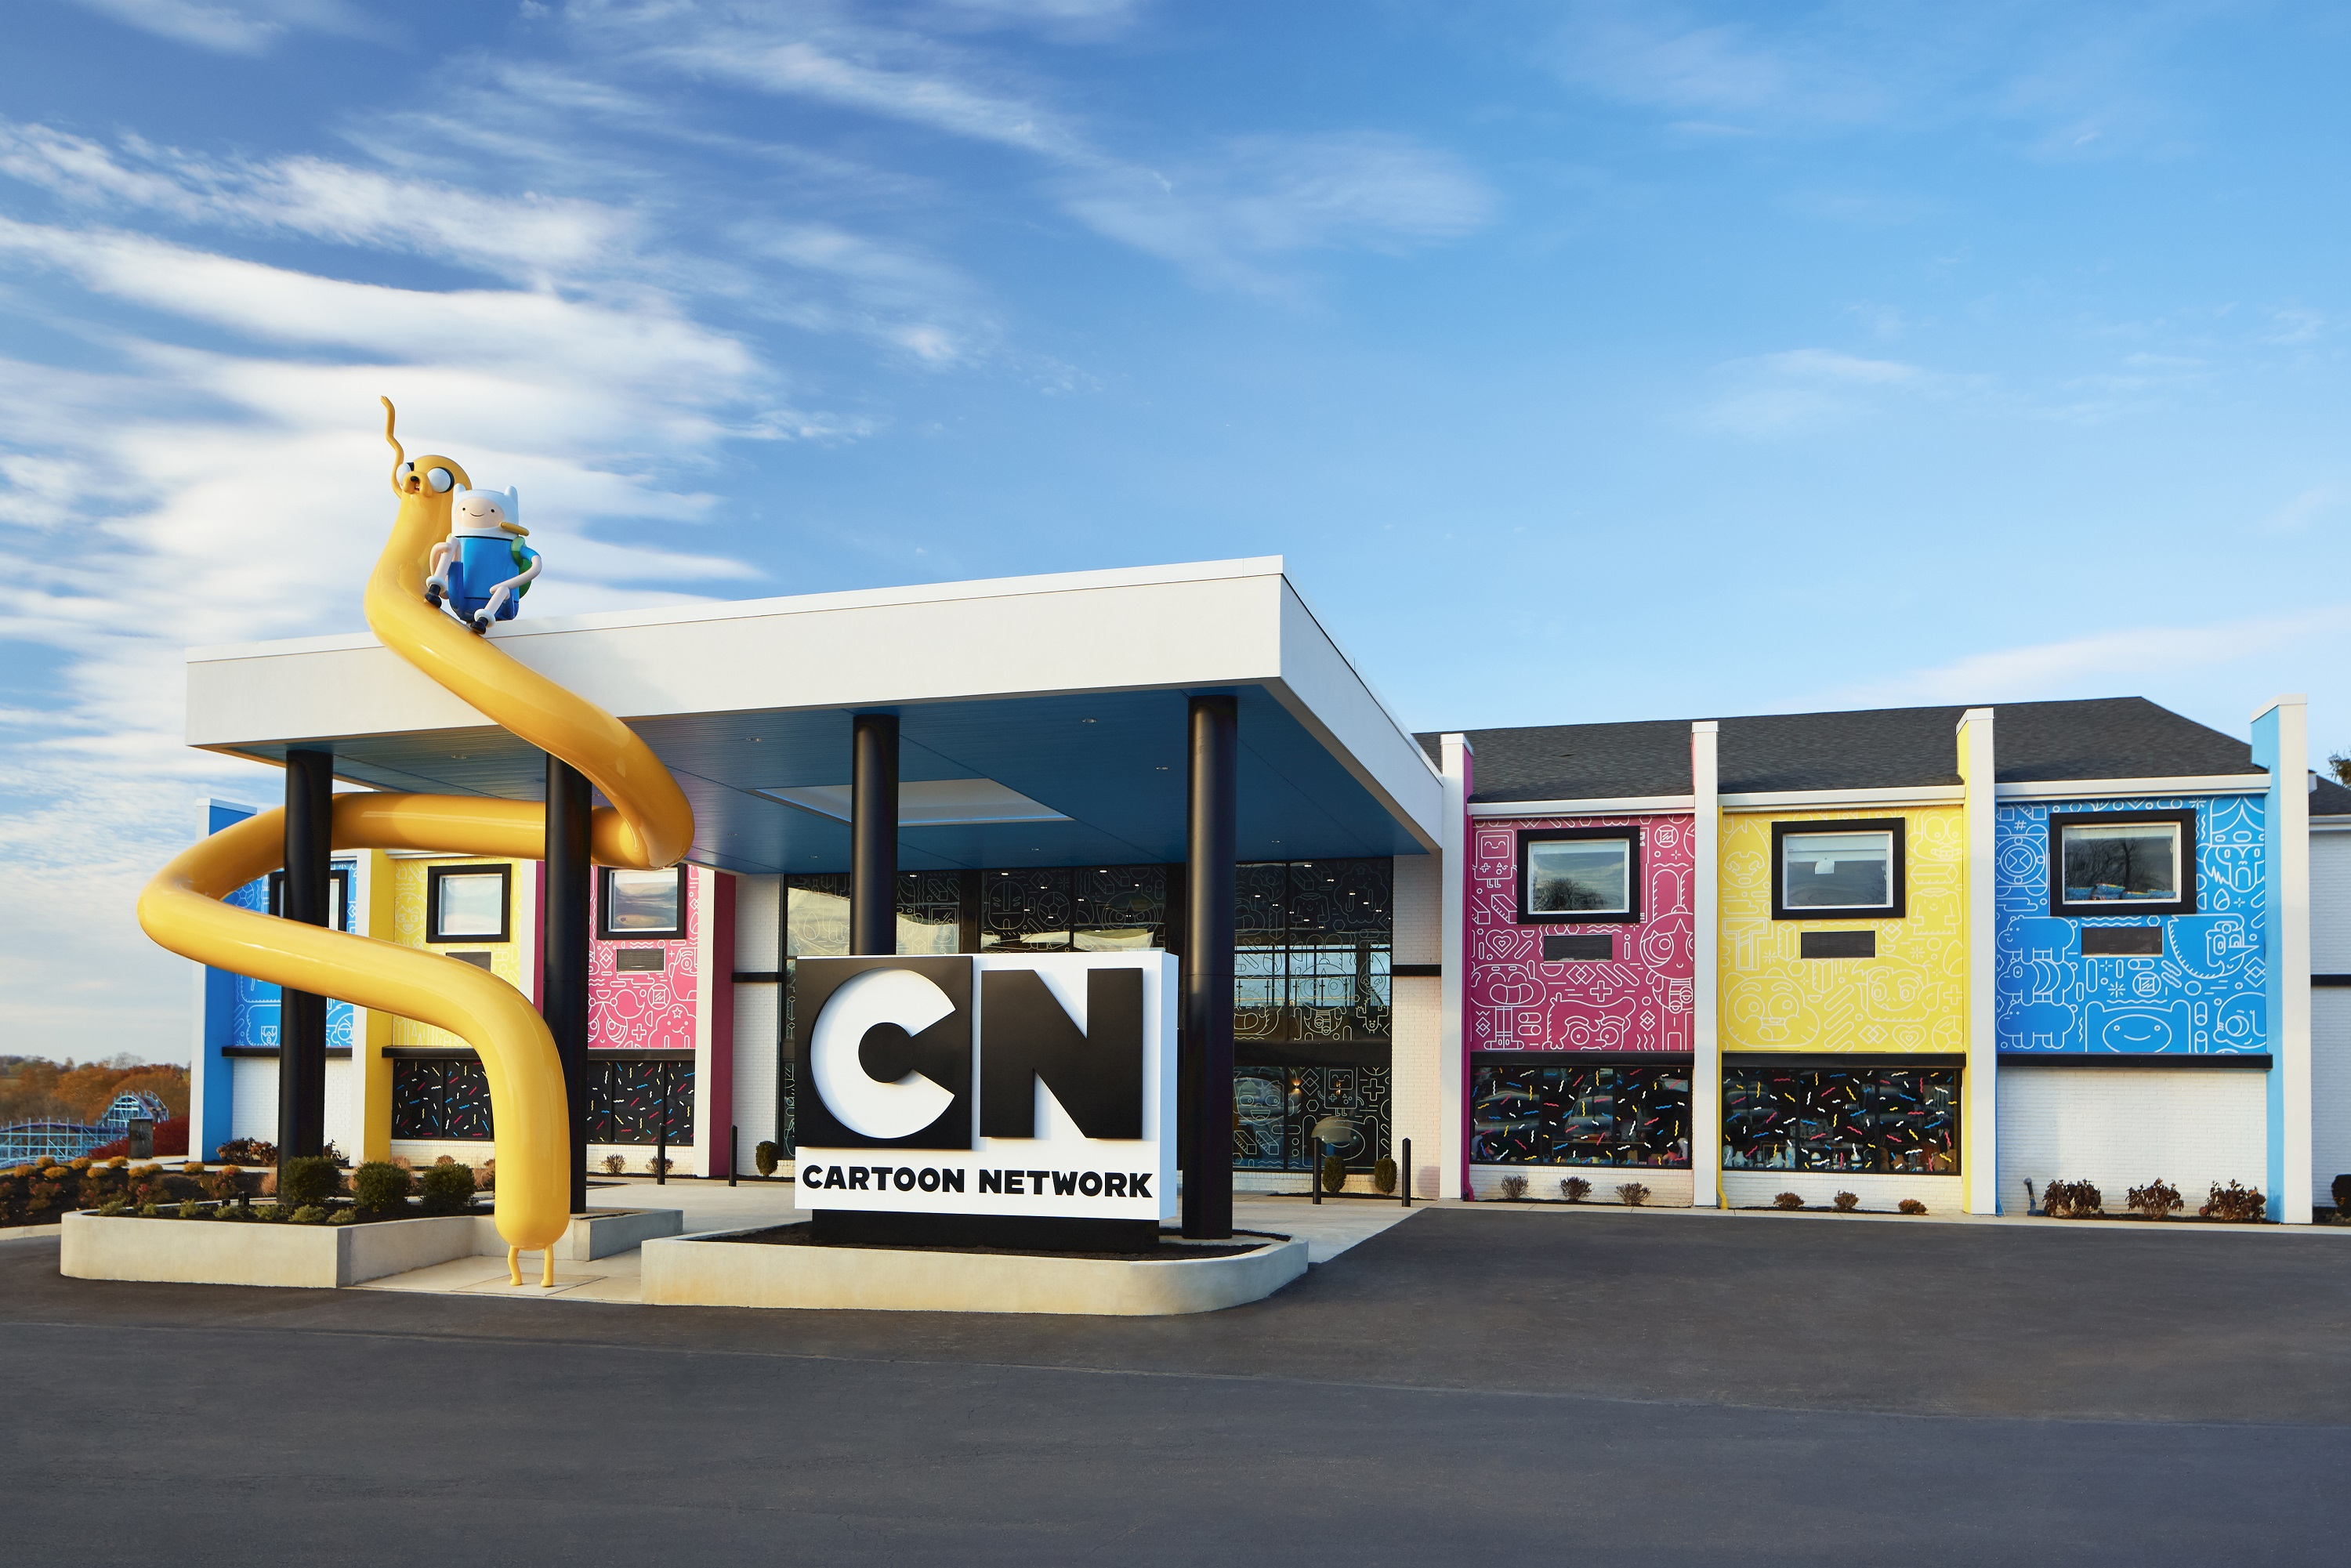 Front of the Cartoon Network Hotel building